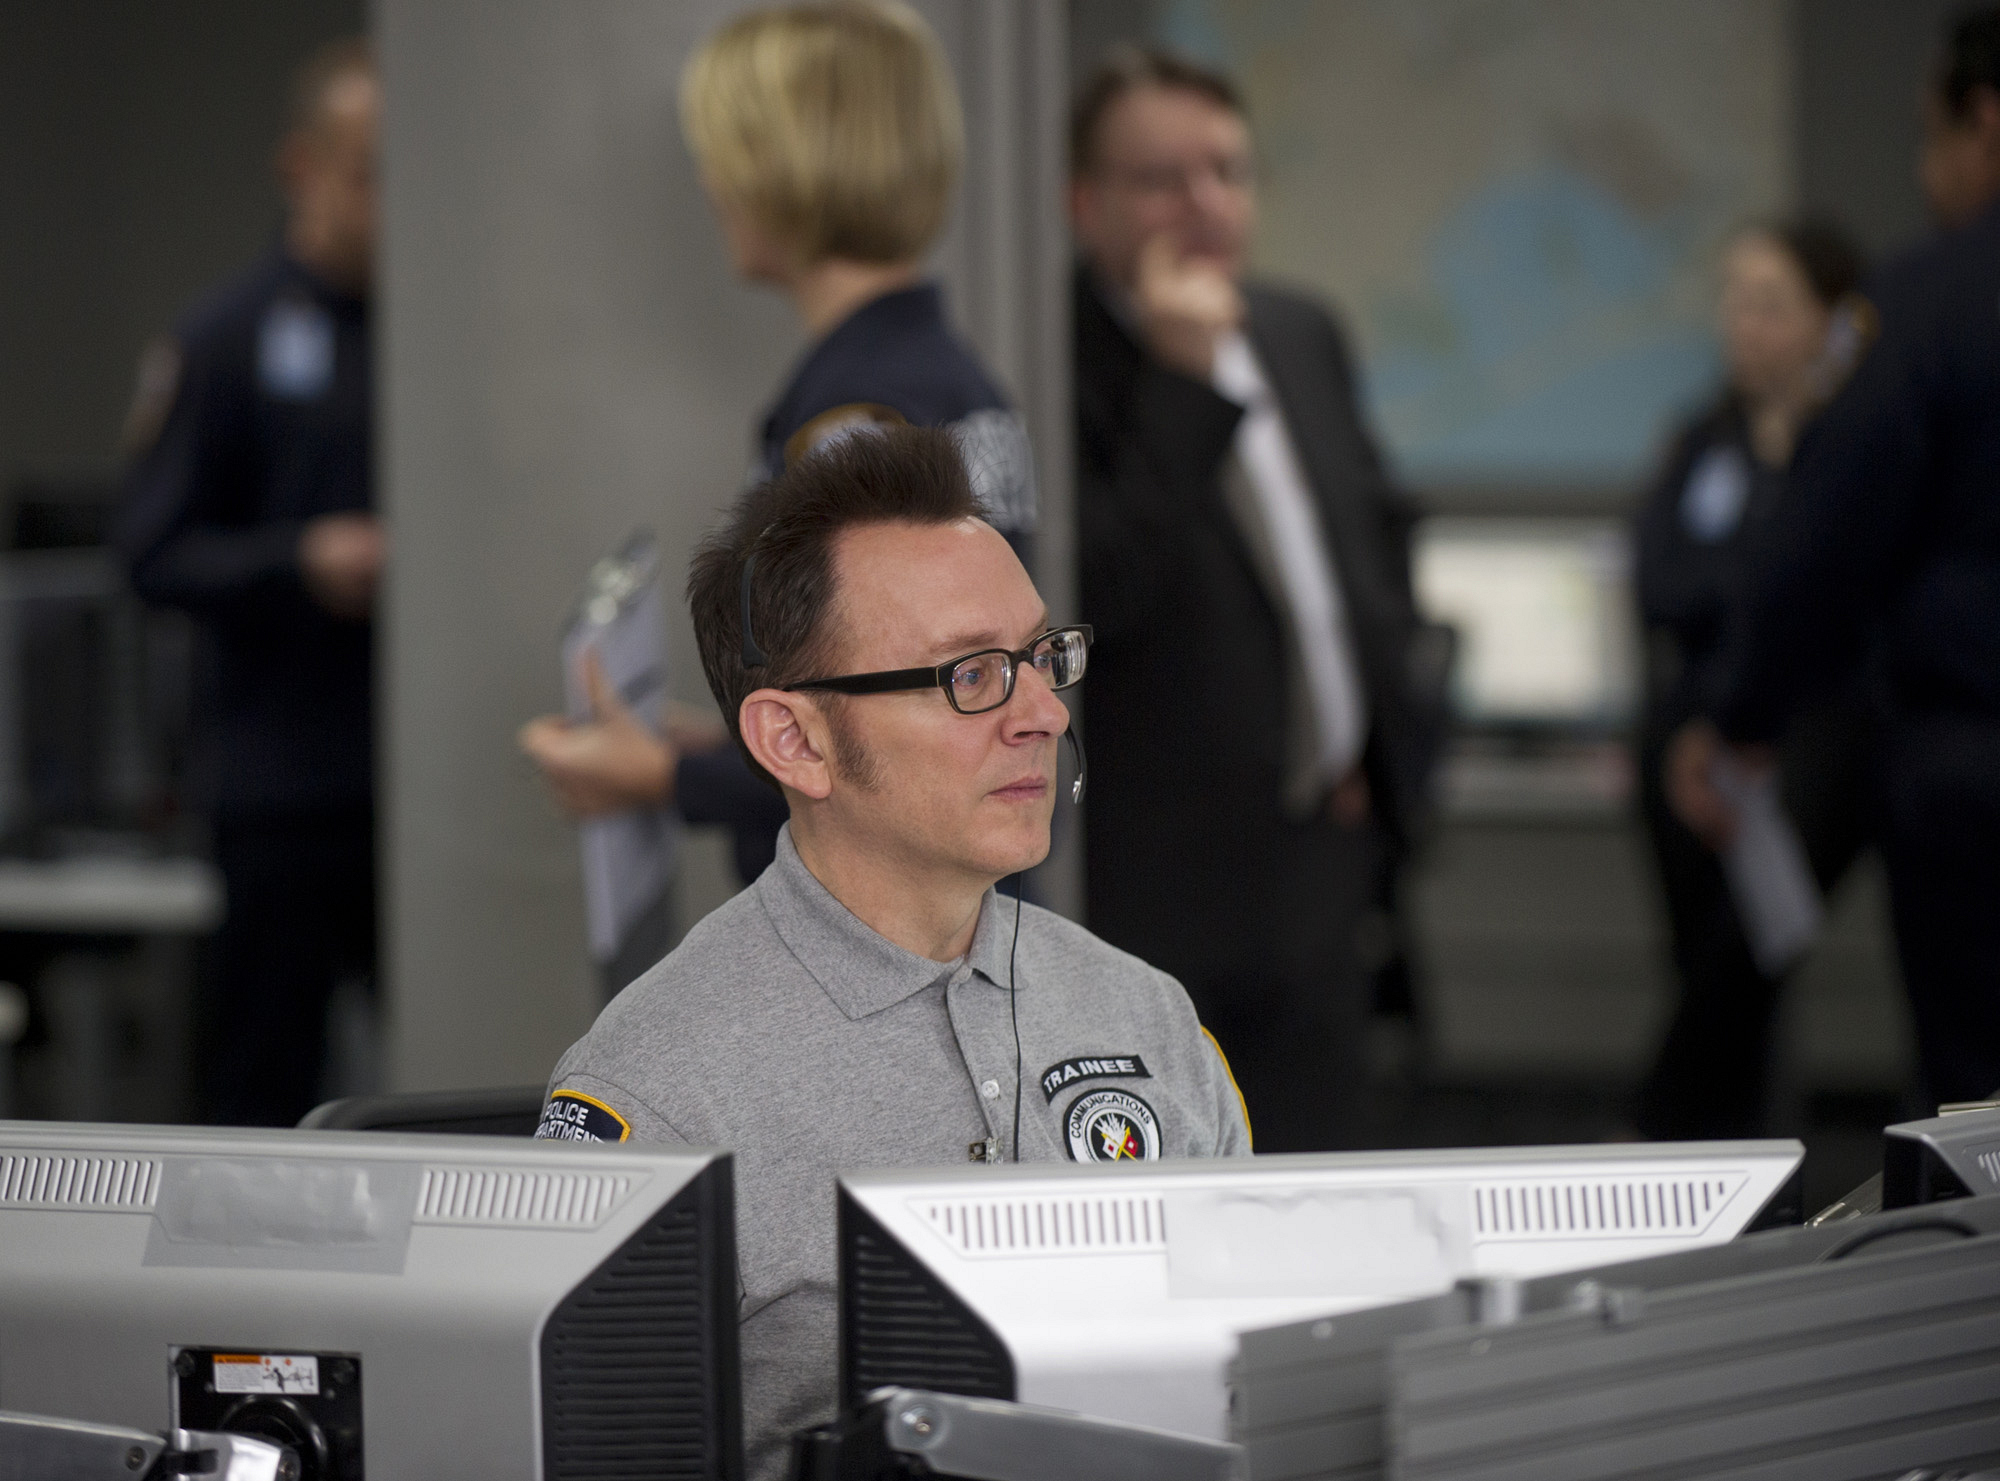 Finch goes undercover in an emergency call center.